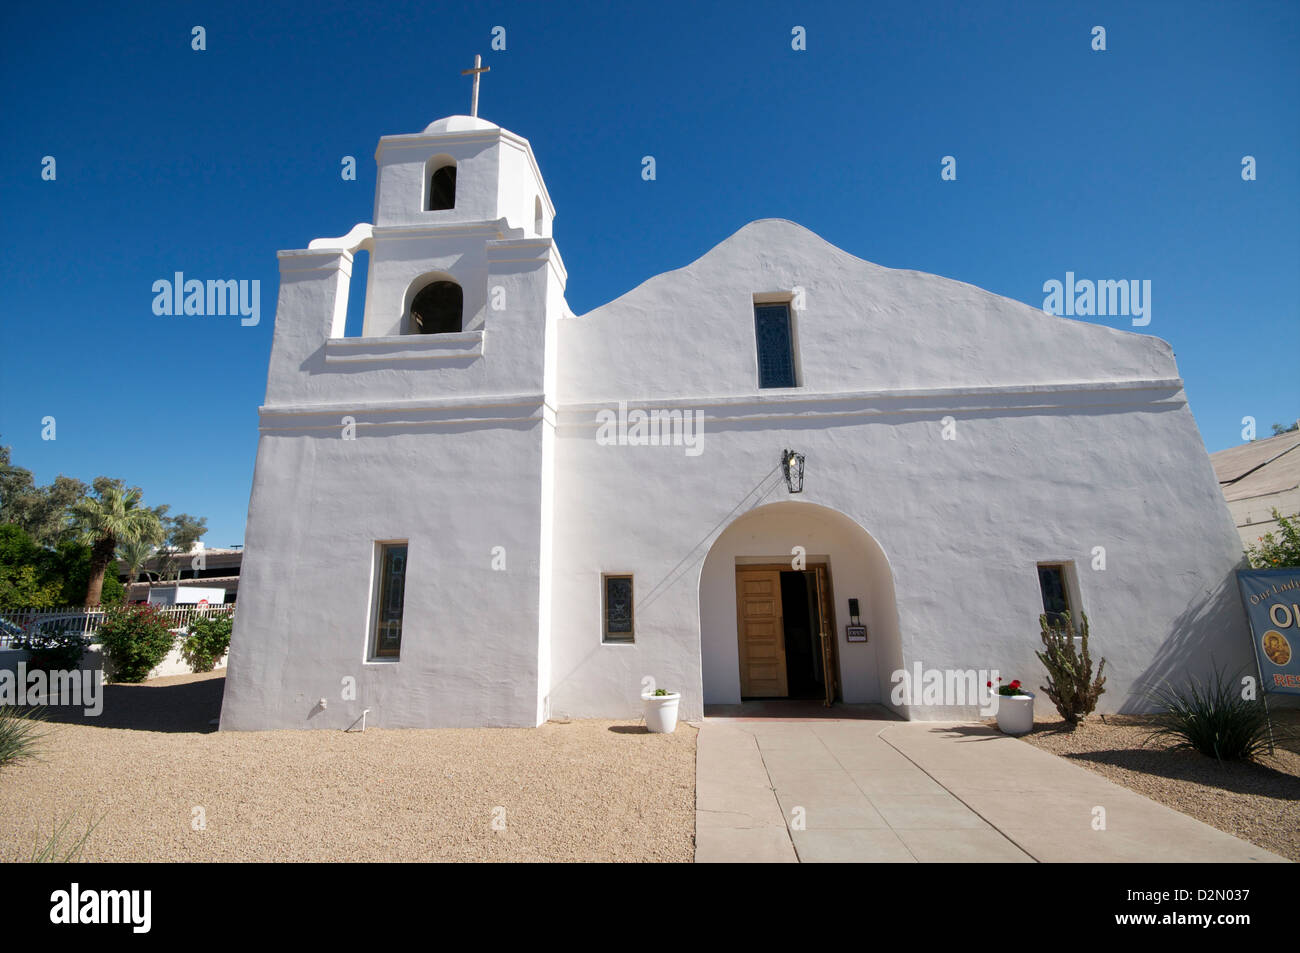 Our Lady of Perpetual Help Mission Church, Scottsdale, near Phoenix, Arizona, United States of America, North America - Stock Image